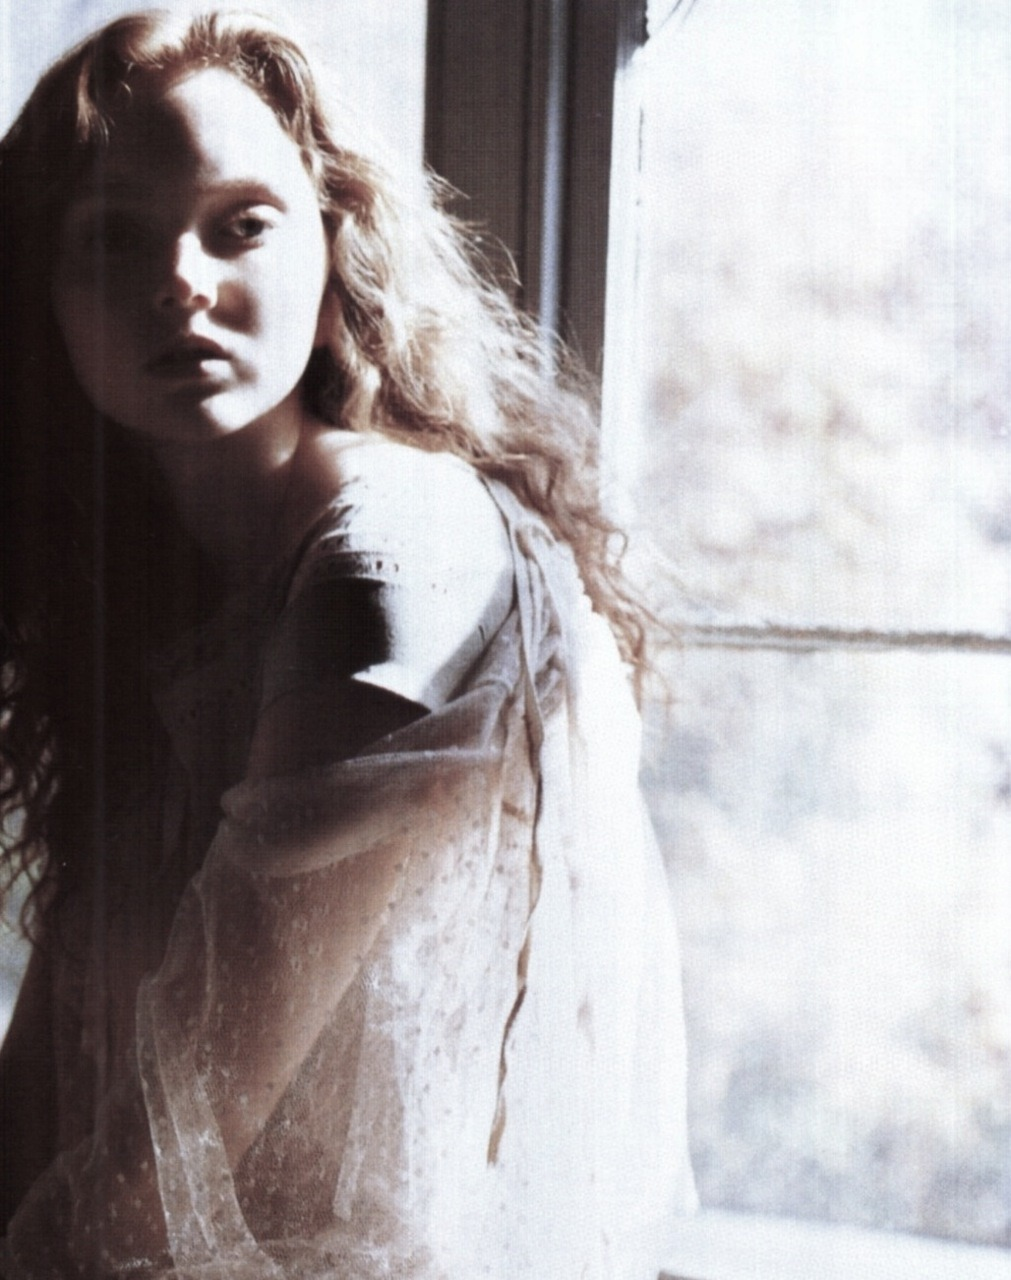 Lily Cole in Dressed in Innocence by Carter Smith for Vogue Nippon March 2006